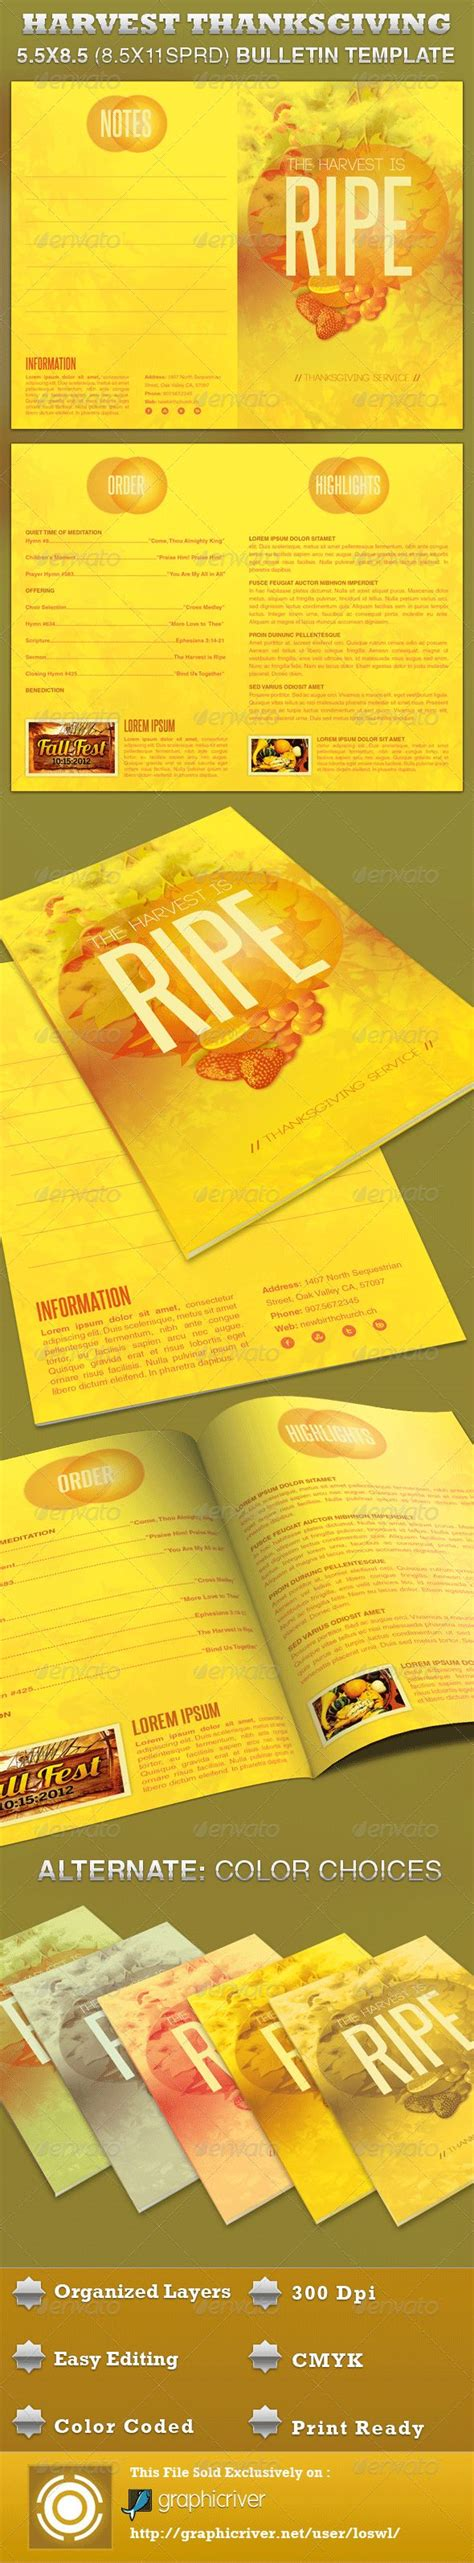 17 Best Images About Church Bulletin Templates On Pinterest Program Template Flyer Template Church Program Template Graphics